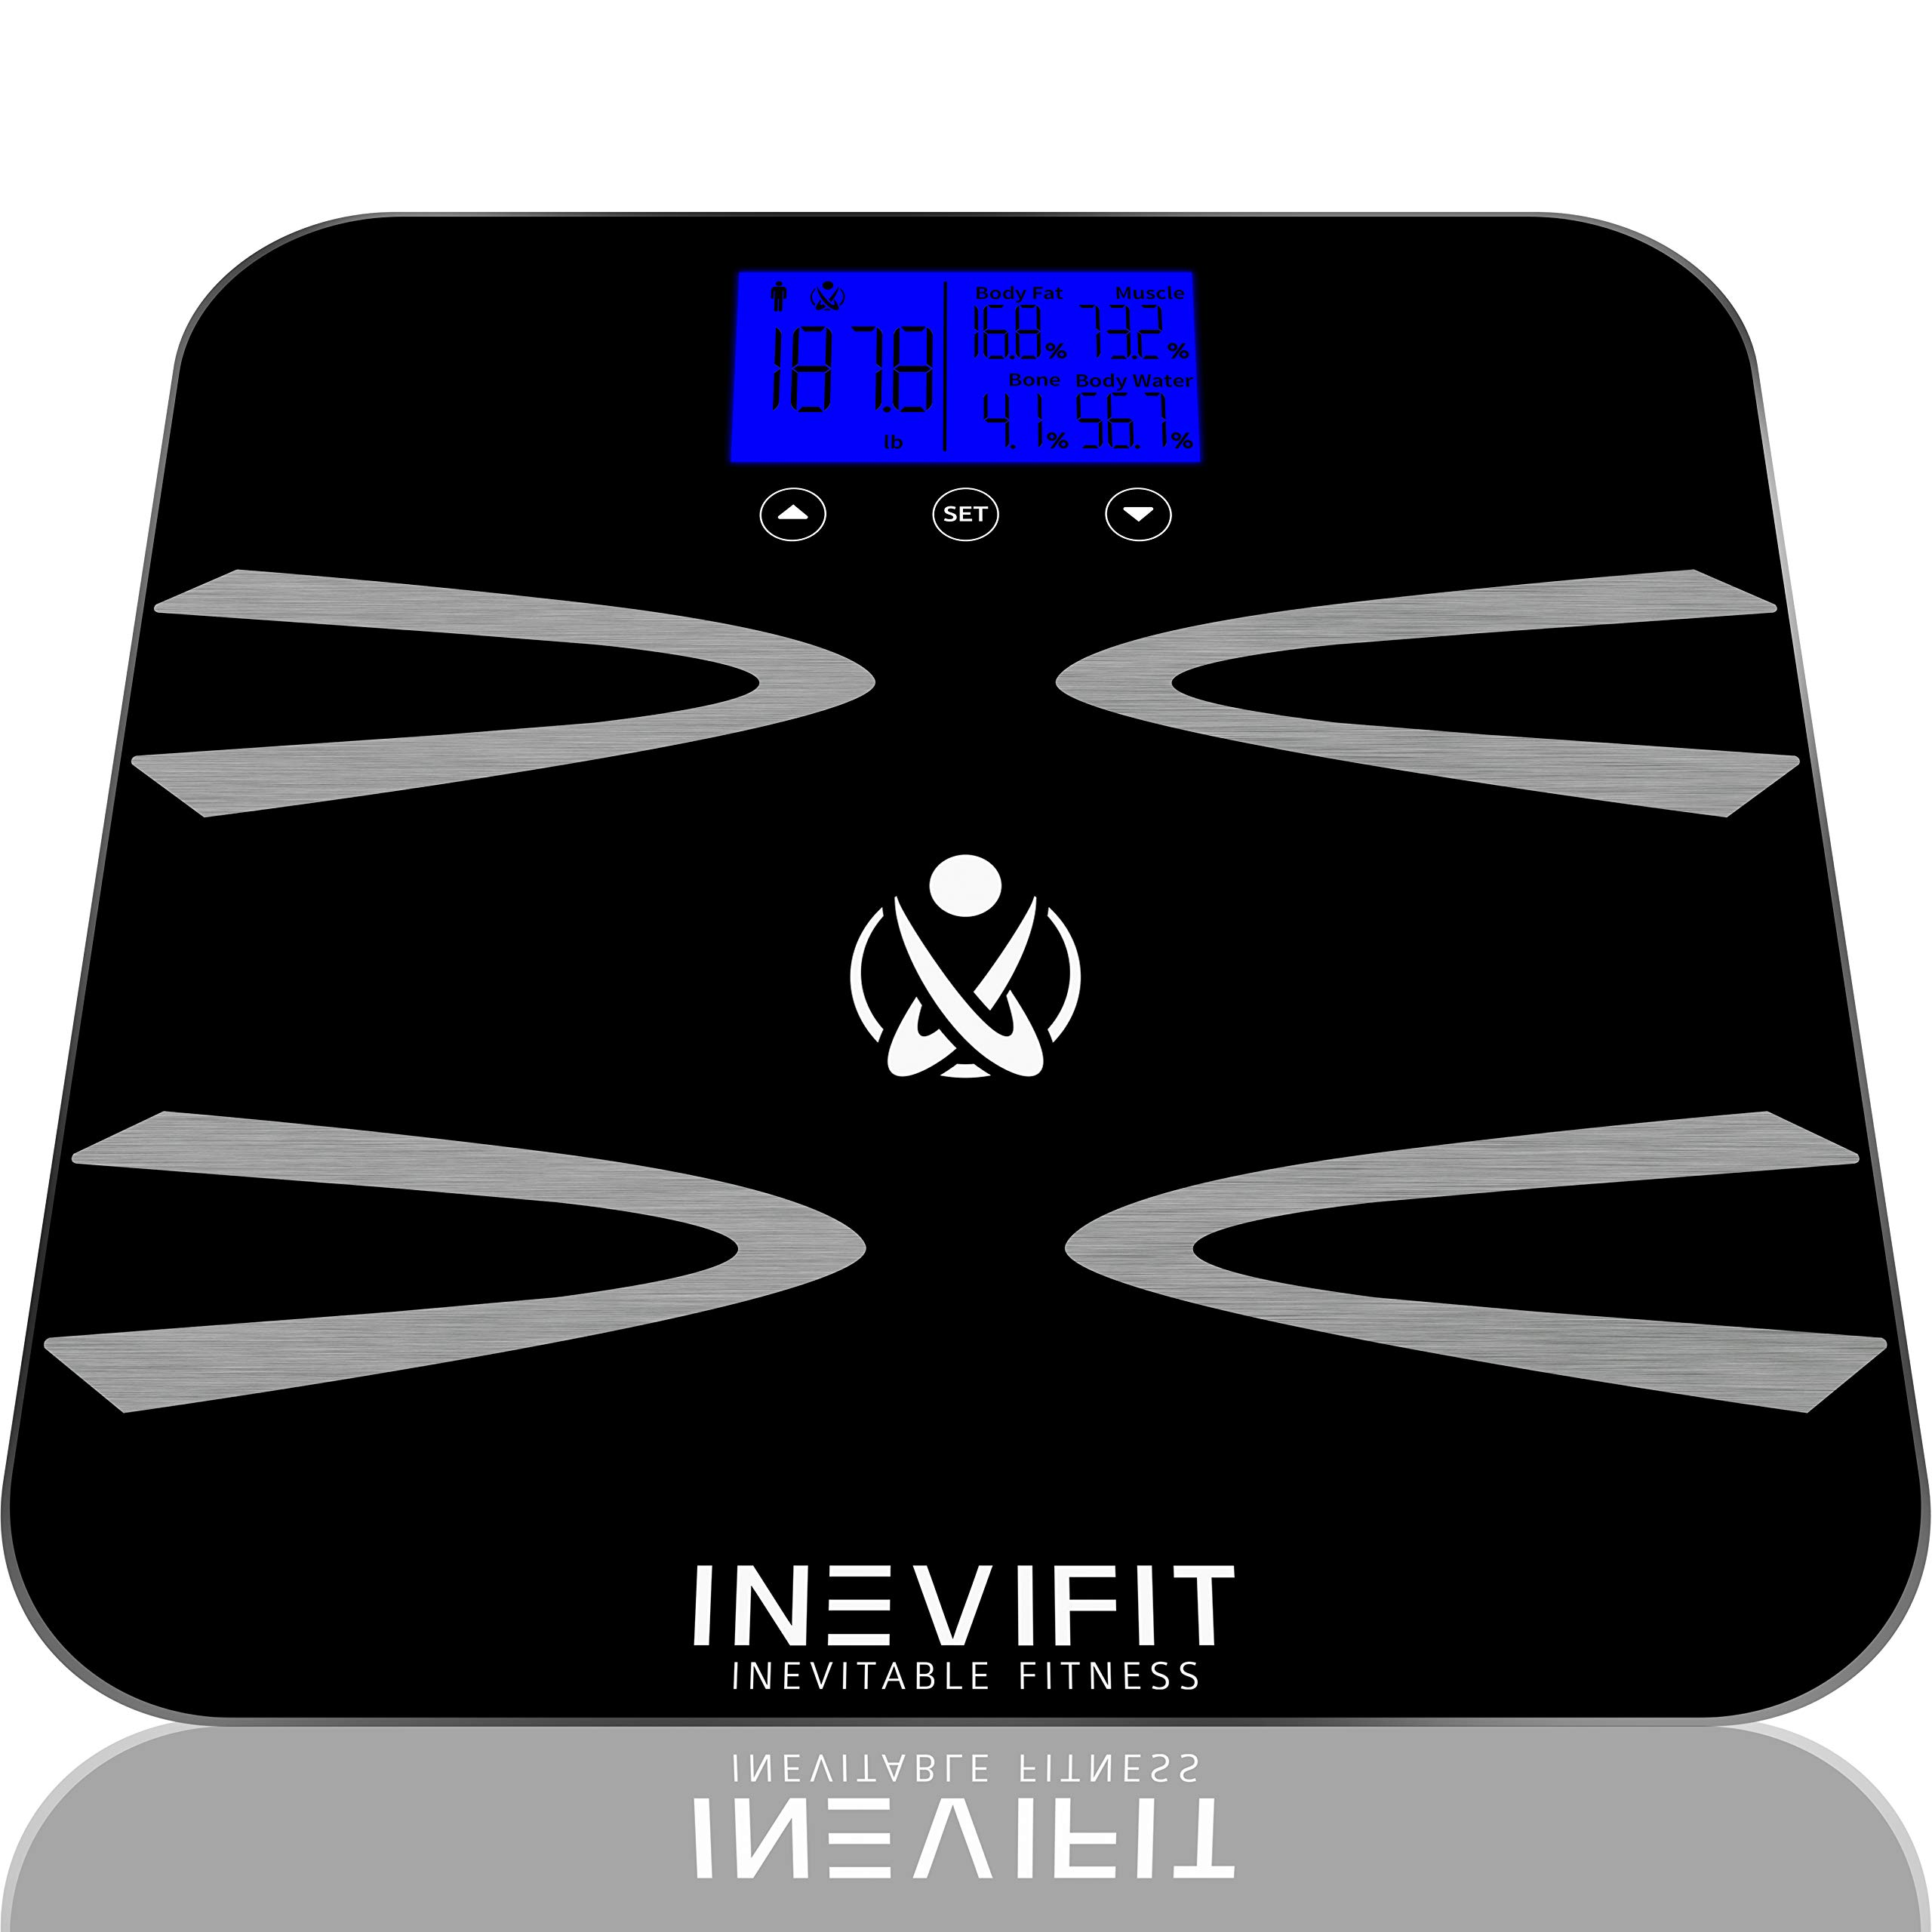 INEVIFIT Body-Analyzer Scale, Highly Accurate Digital Bathroom Body Composition Analyzer, Measures Weight, Body Fat, Water, Muscle, BMI, Visceral Levels & Bone Mass for 10 Users. 5-Year Warranty by INEVIFIT